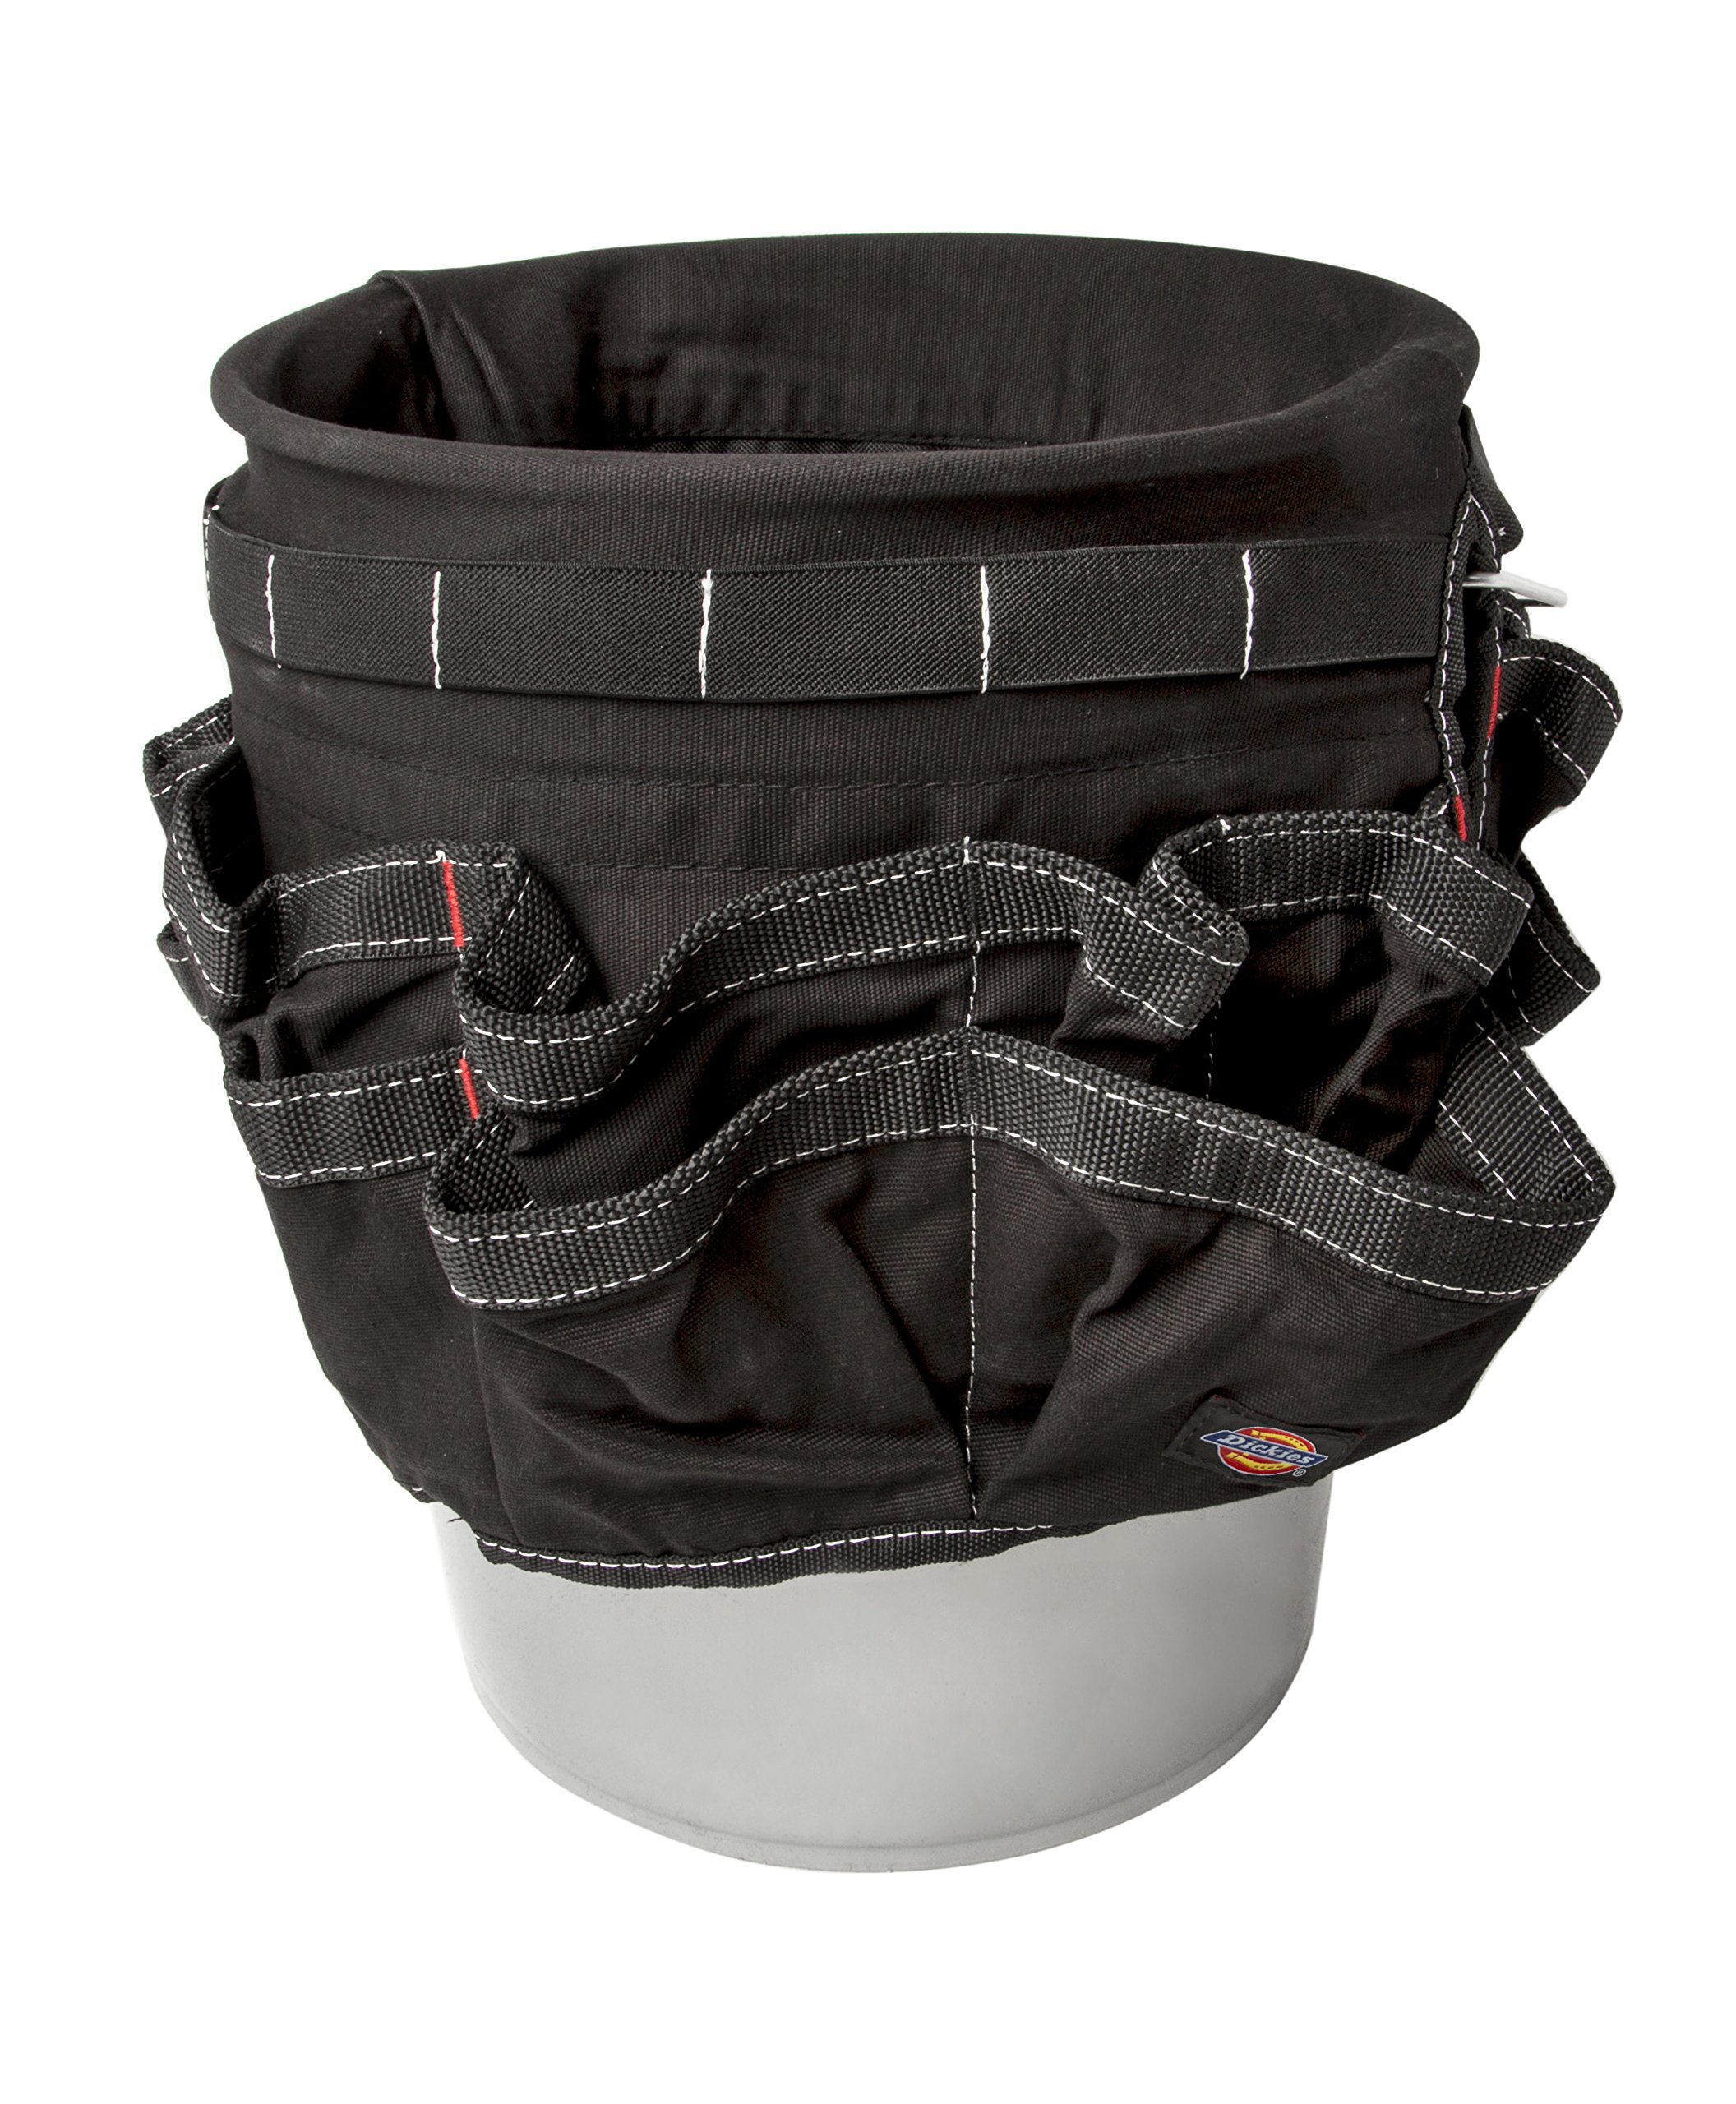 Dickies Work Gear 57062 42-Compartment Bucket Organizer